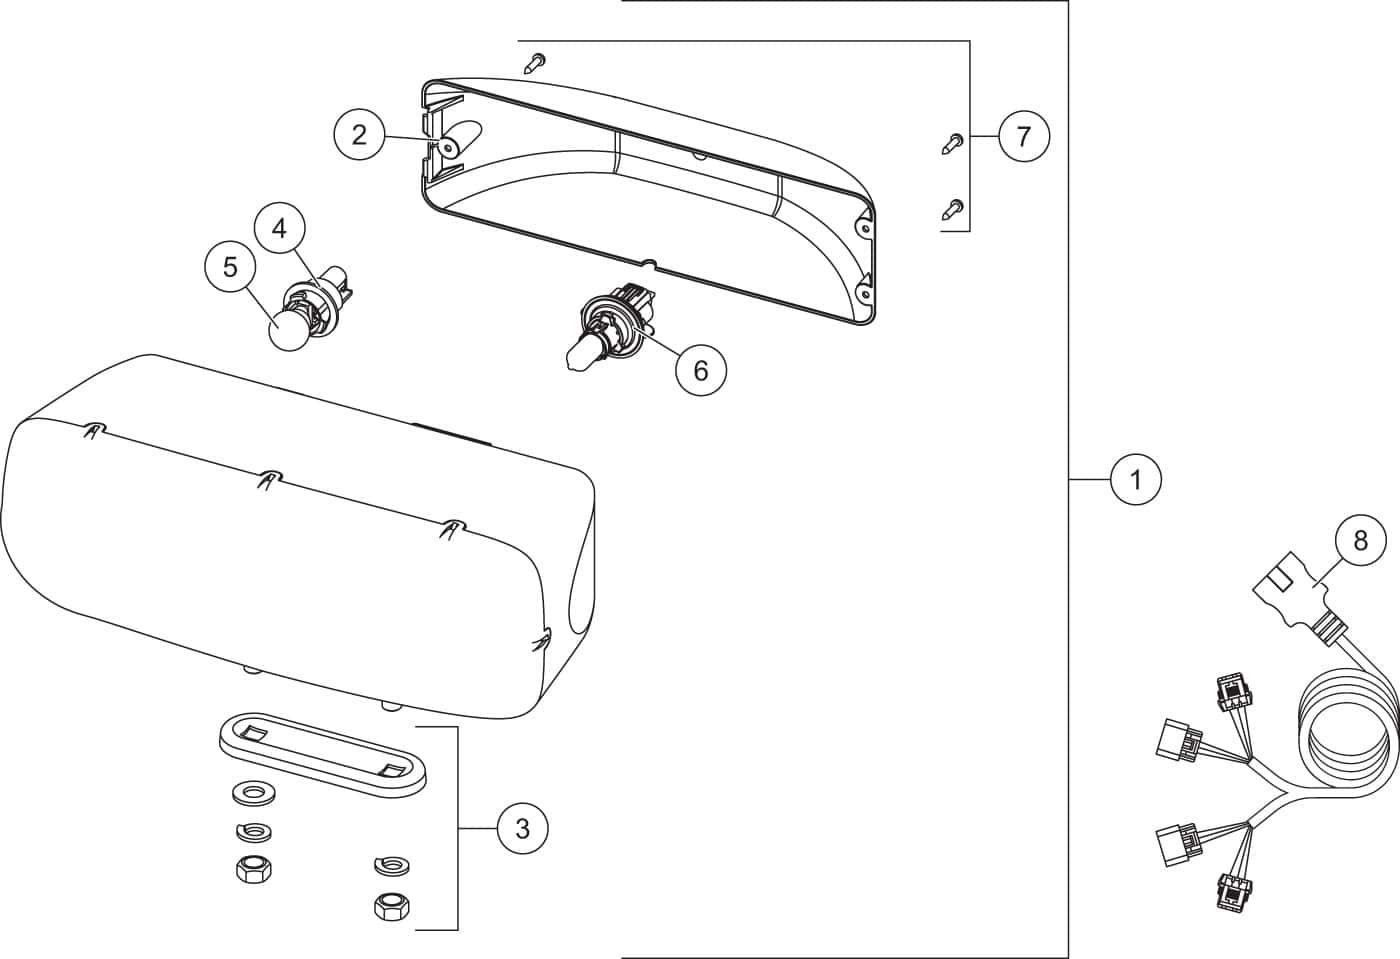 HD2 Headlamp Kit Diagram